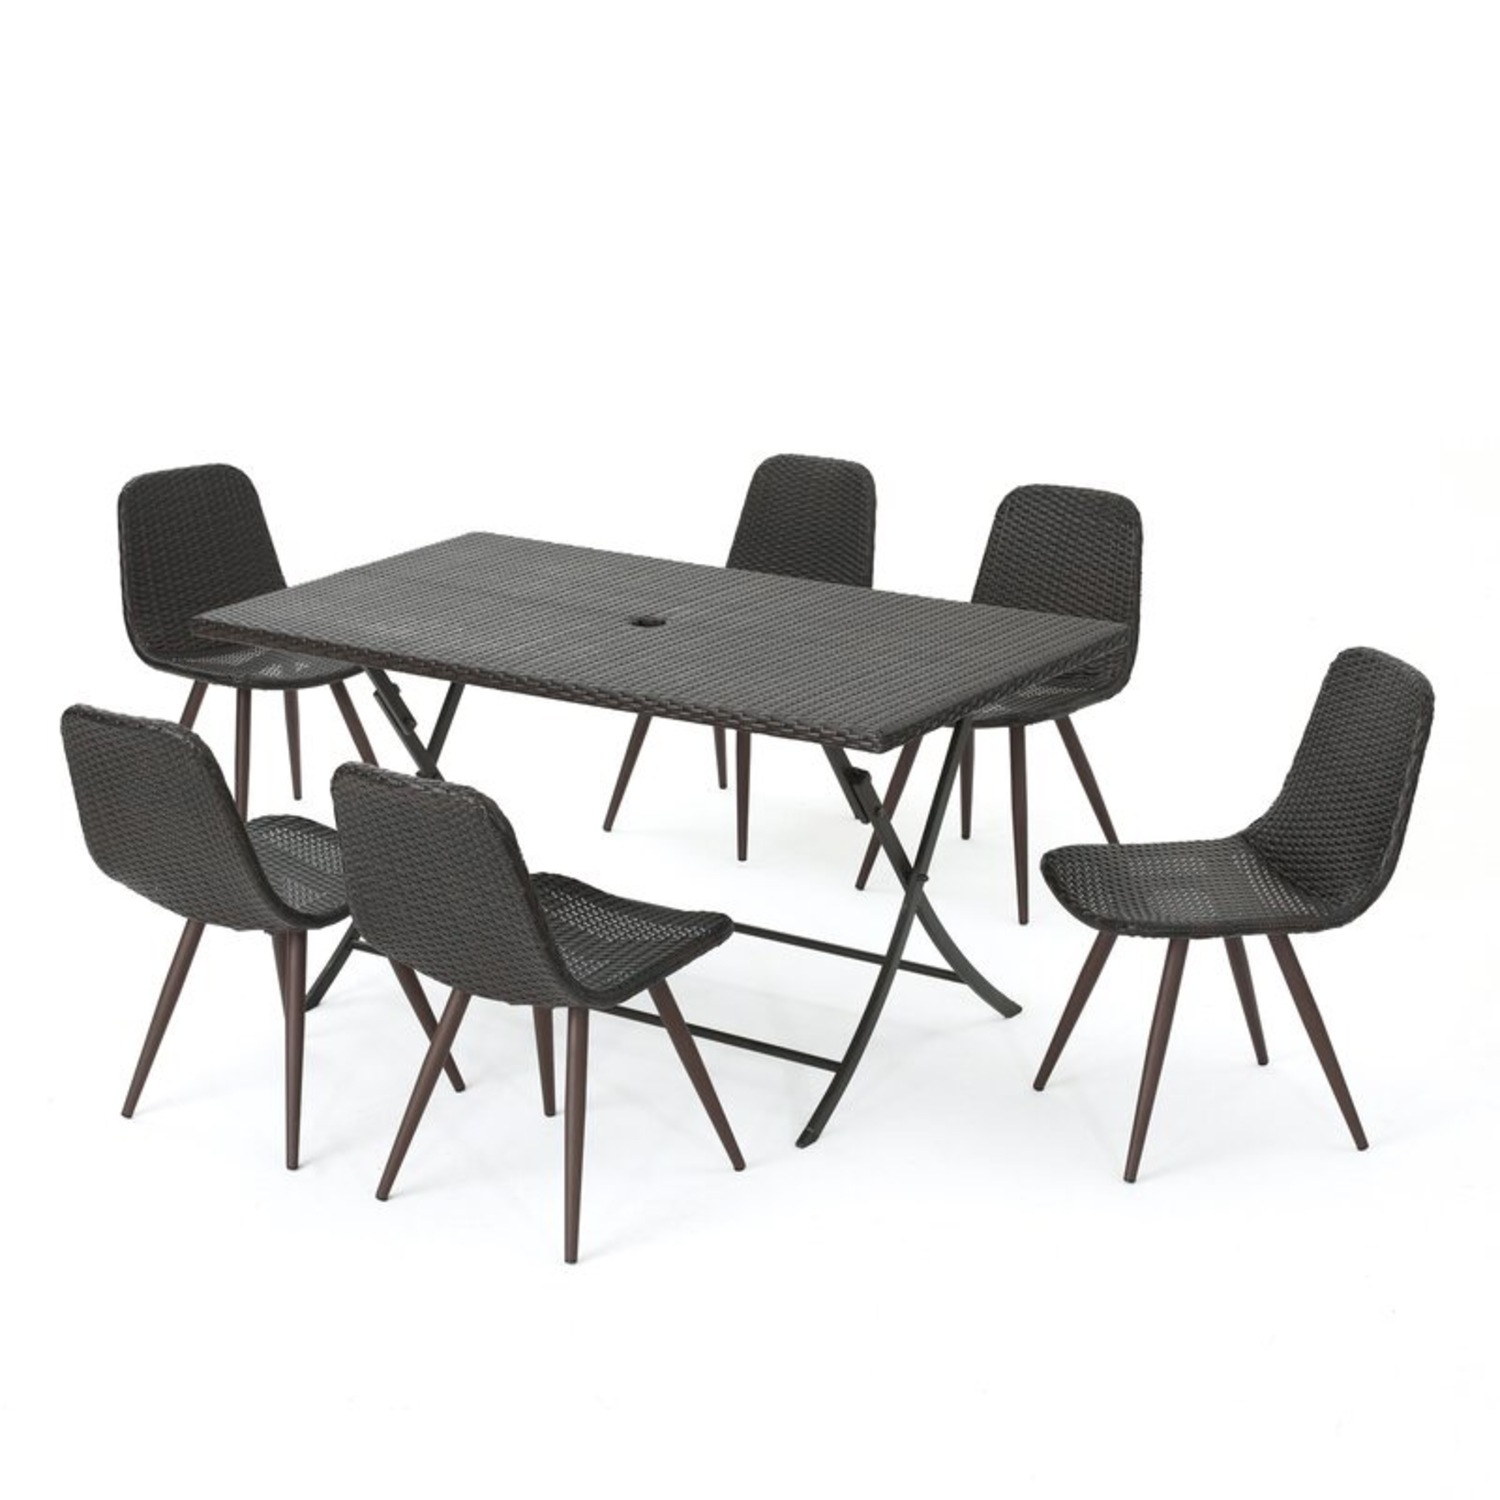 Outdoor Wicker Table and 6 Chairs - image-1